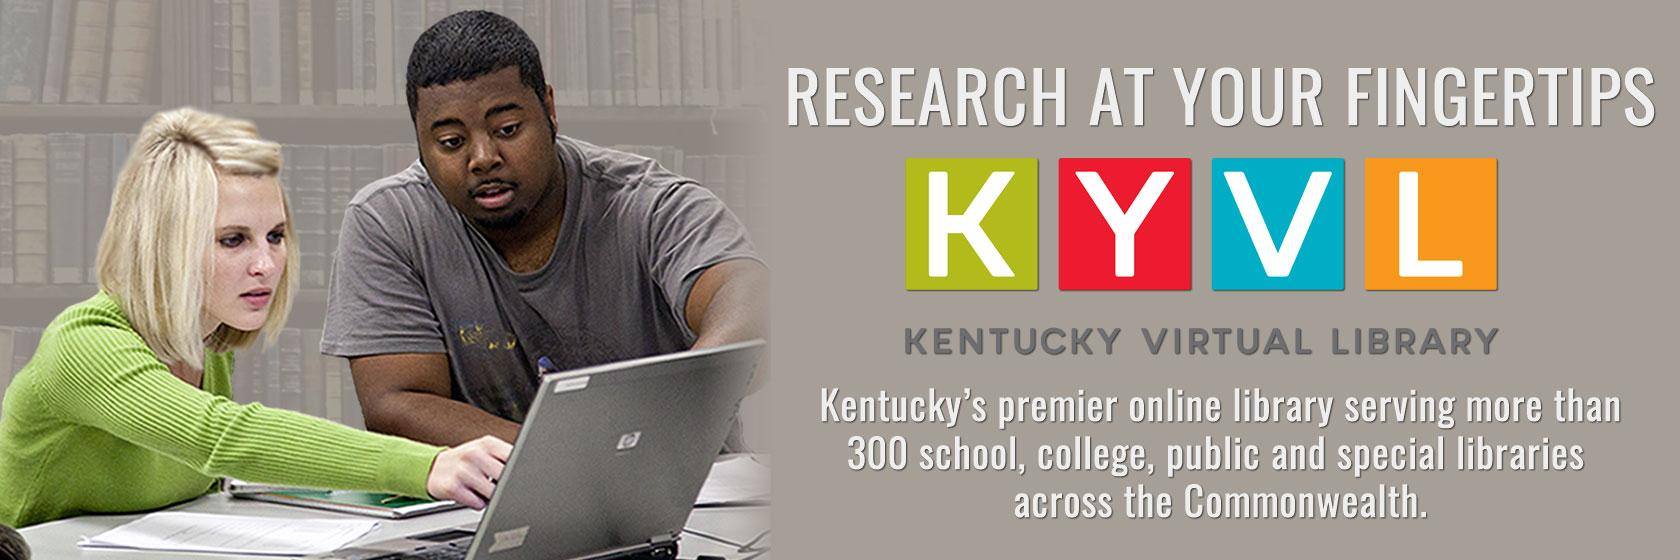 Discover the benefits the Kentucky Virtual Library brings to the library system, as well as for the state of Kentucky.